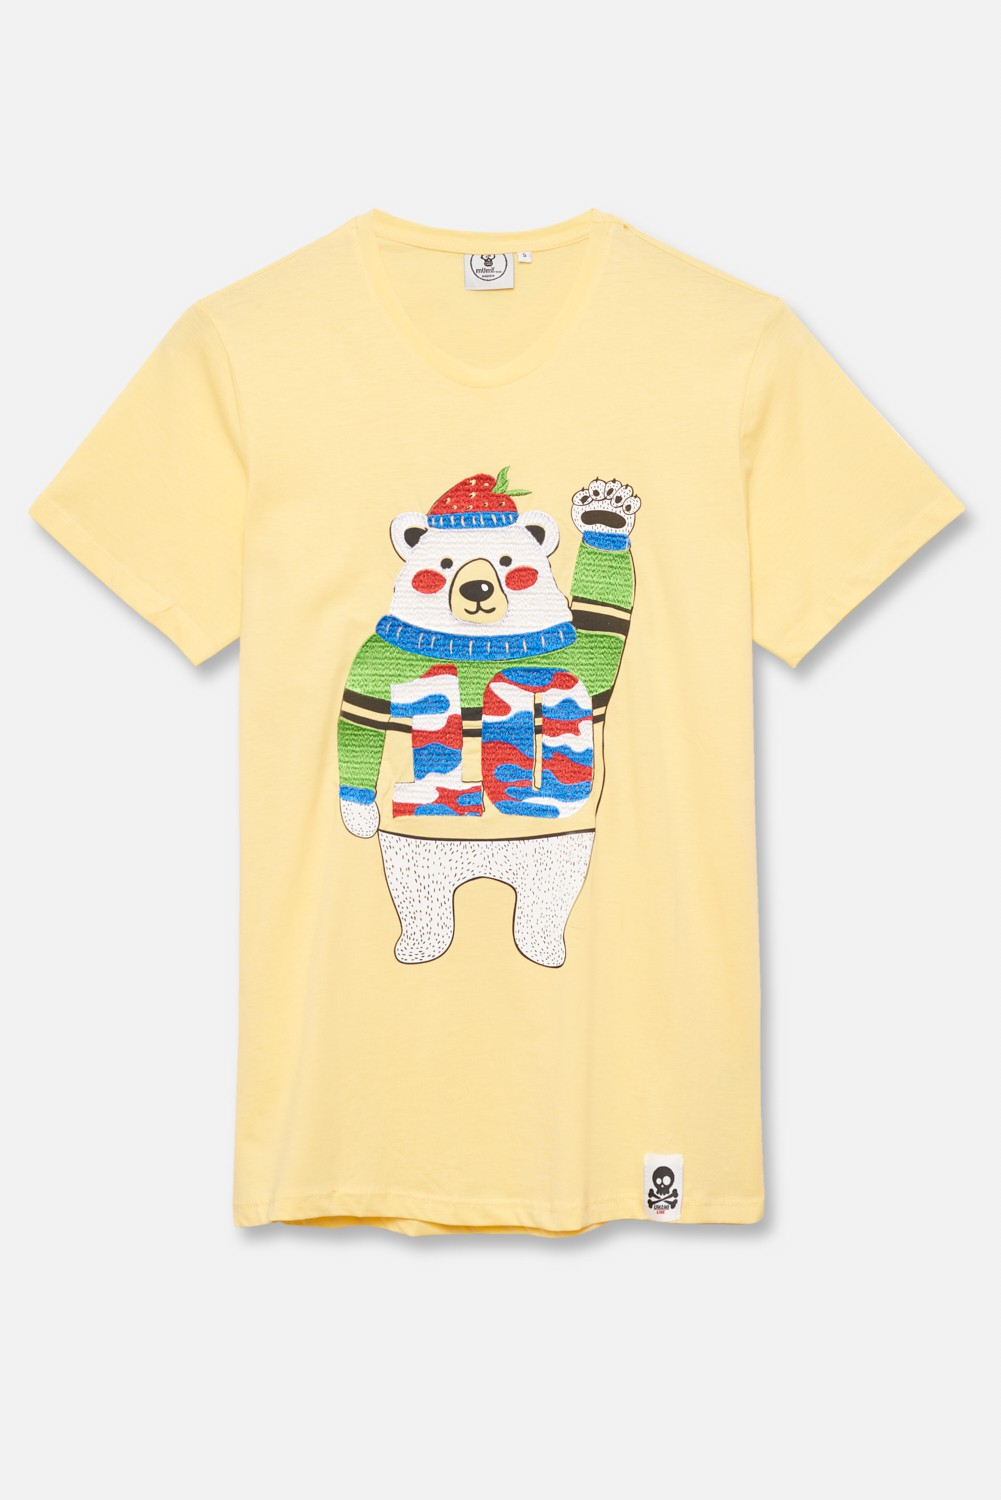 ADULT´S EMBROIDERED T-SHIRT UMAMI BEAR IN JERSEY